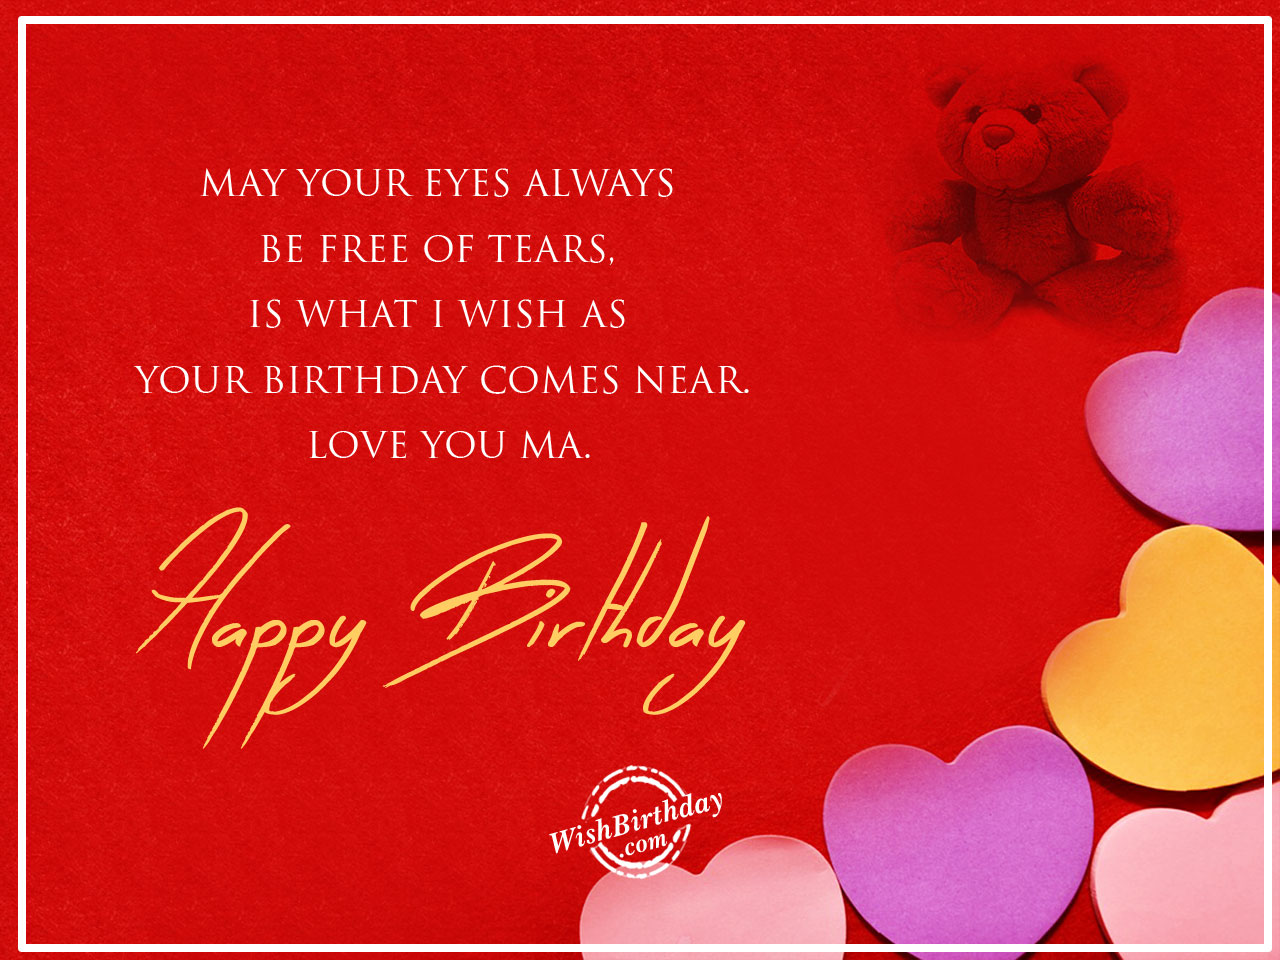 Birthday wishes for mother birthday images pictures take care yourself mom happy birthday m4hsunfo